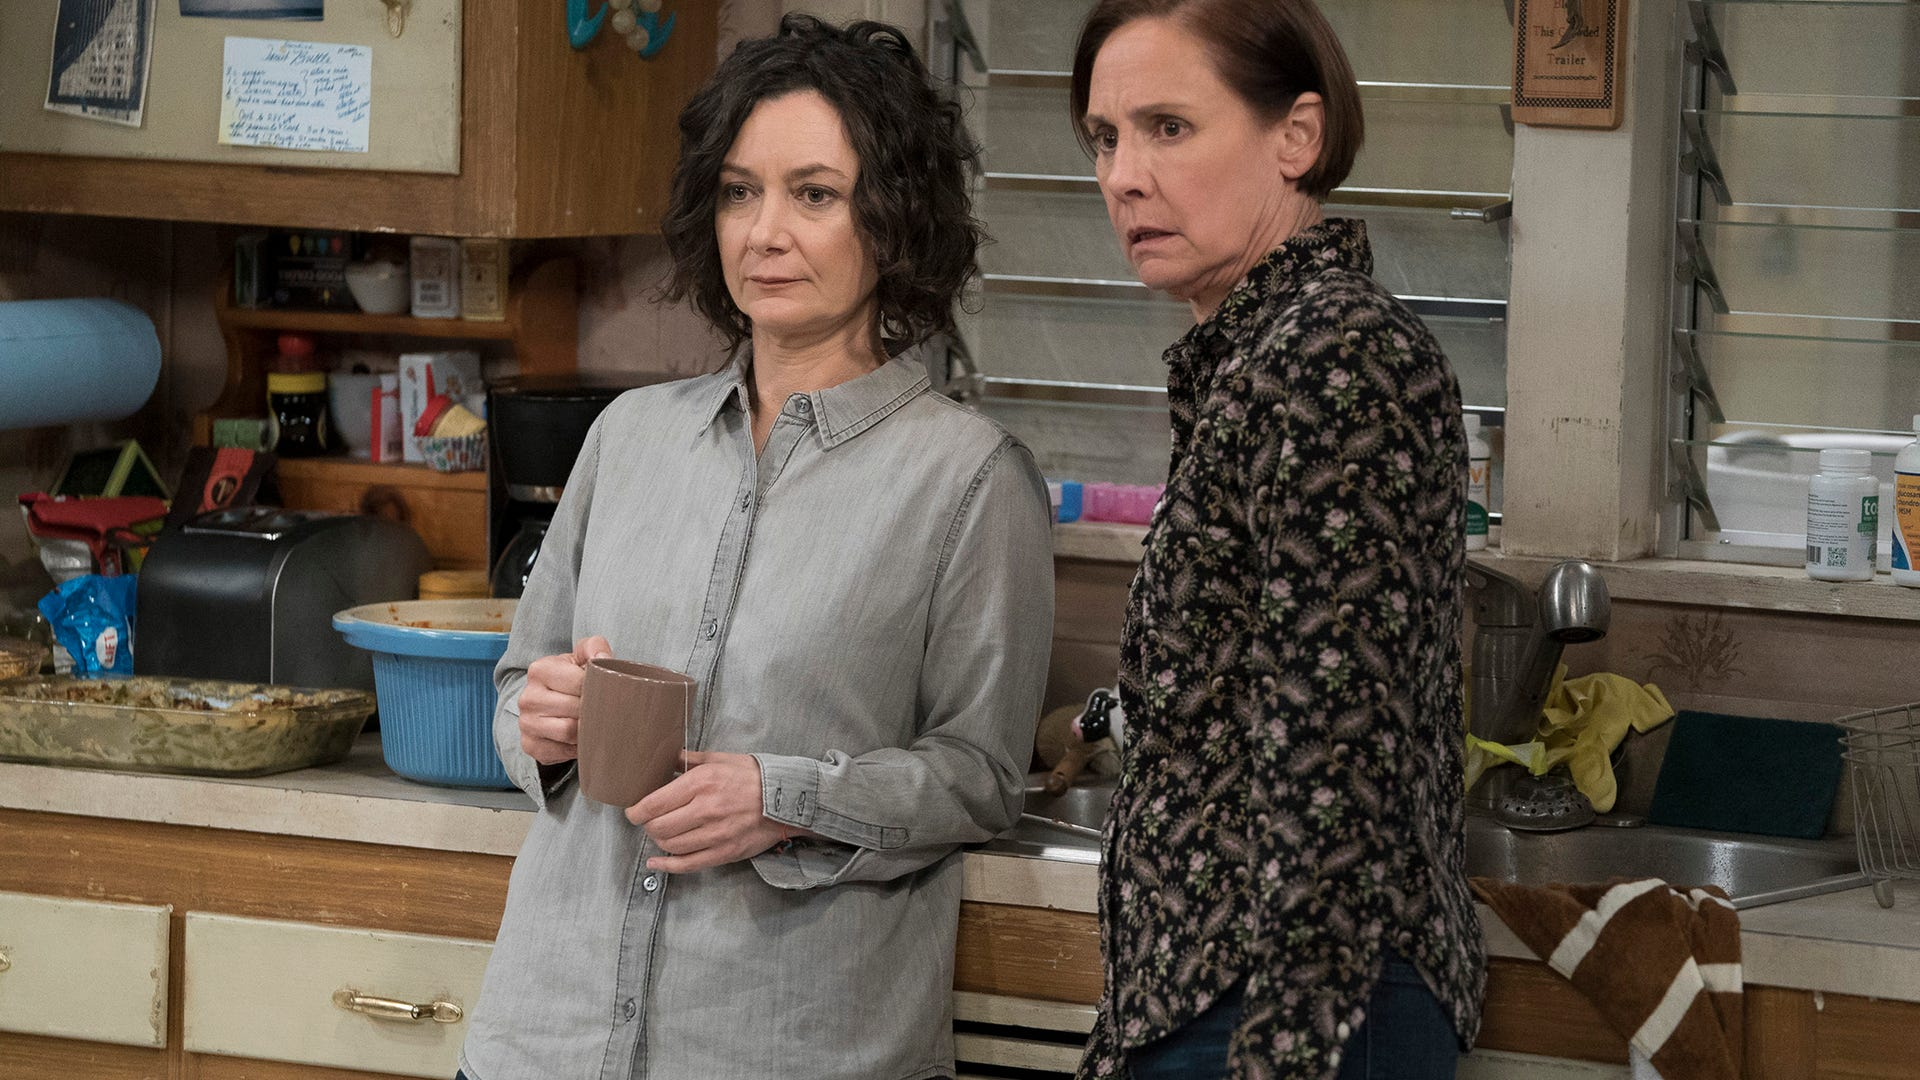 181016-the-conners.jpg